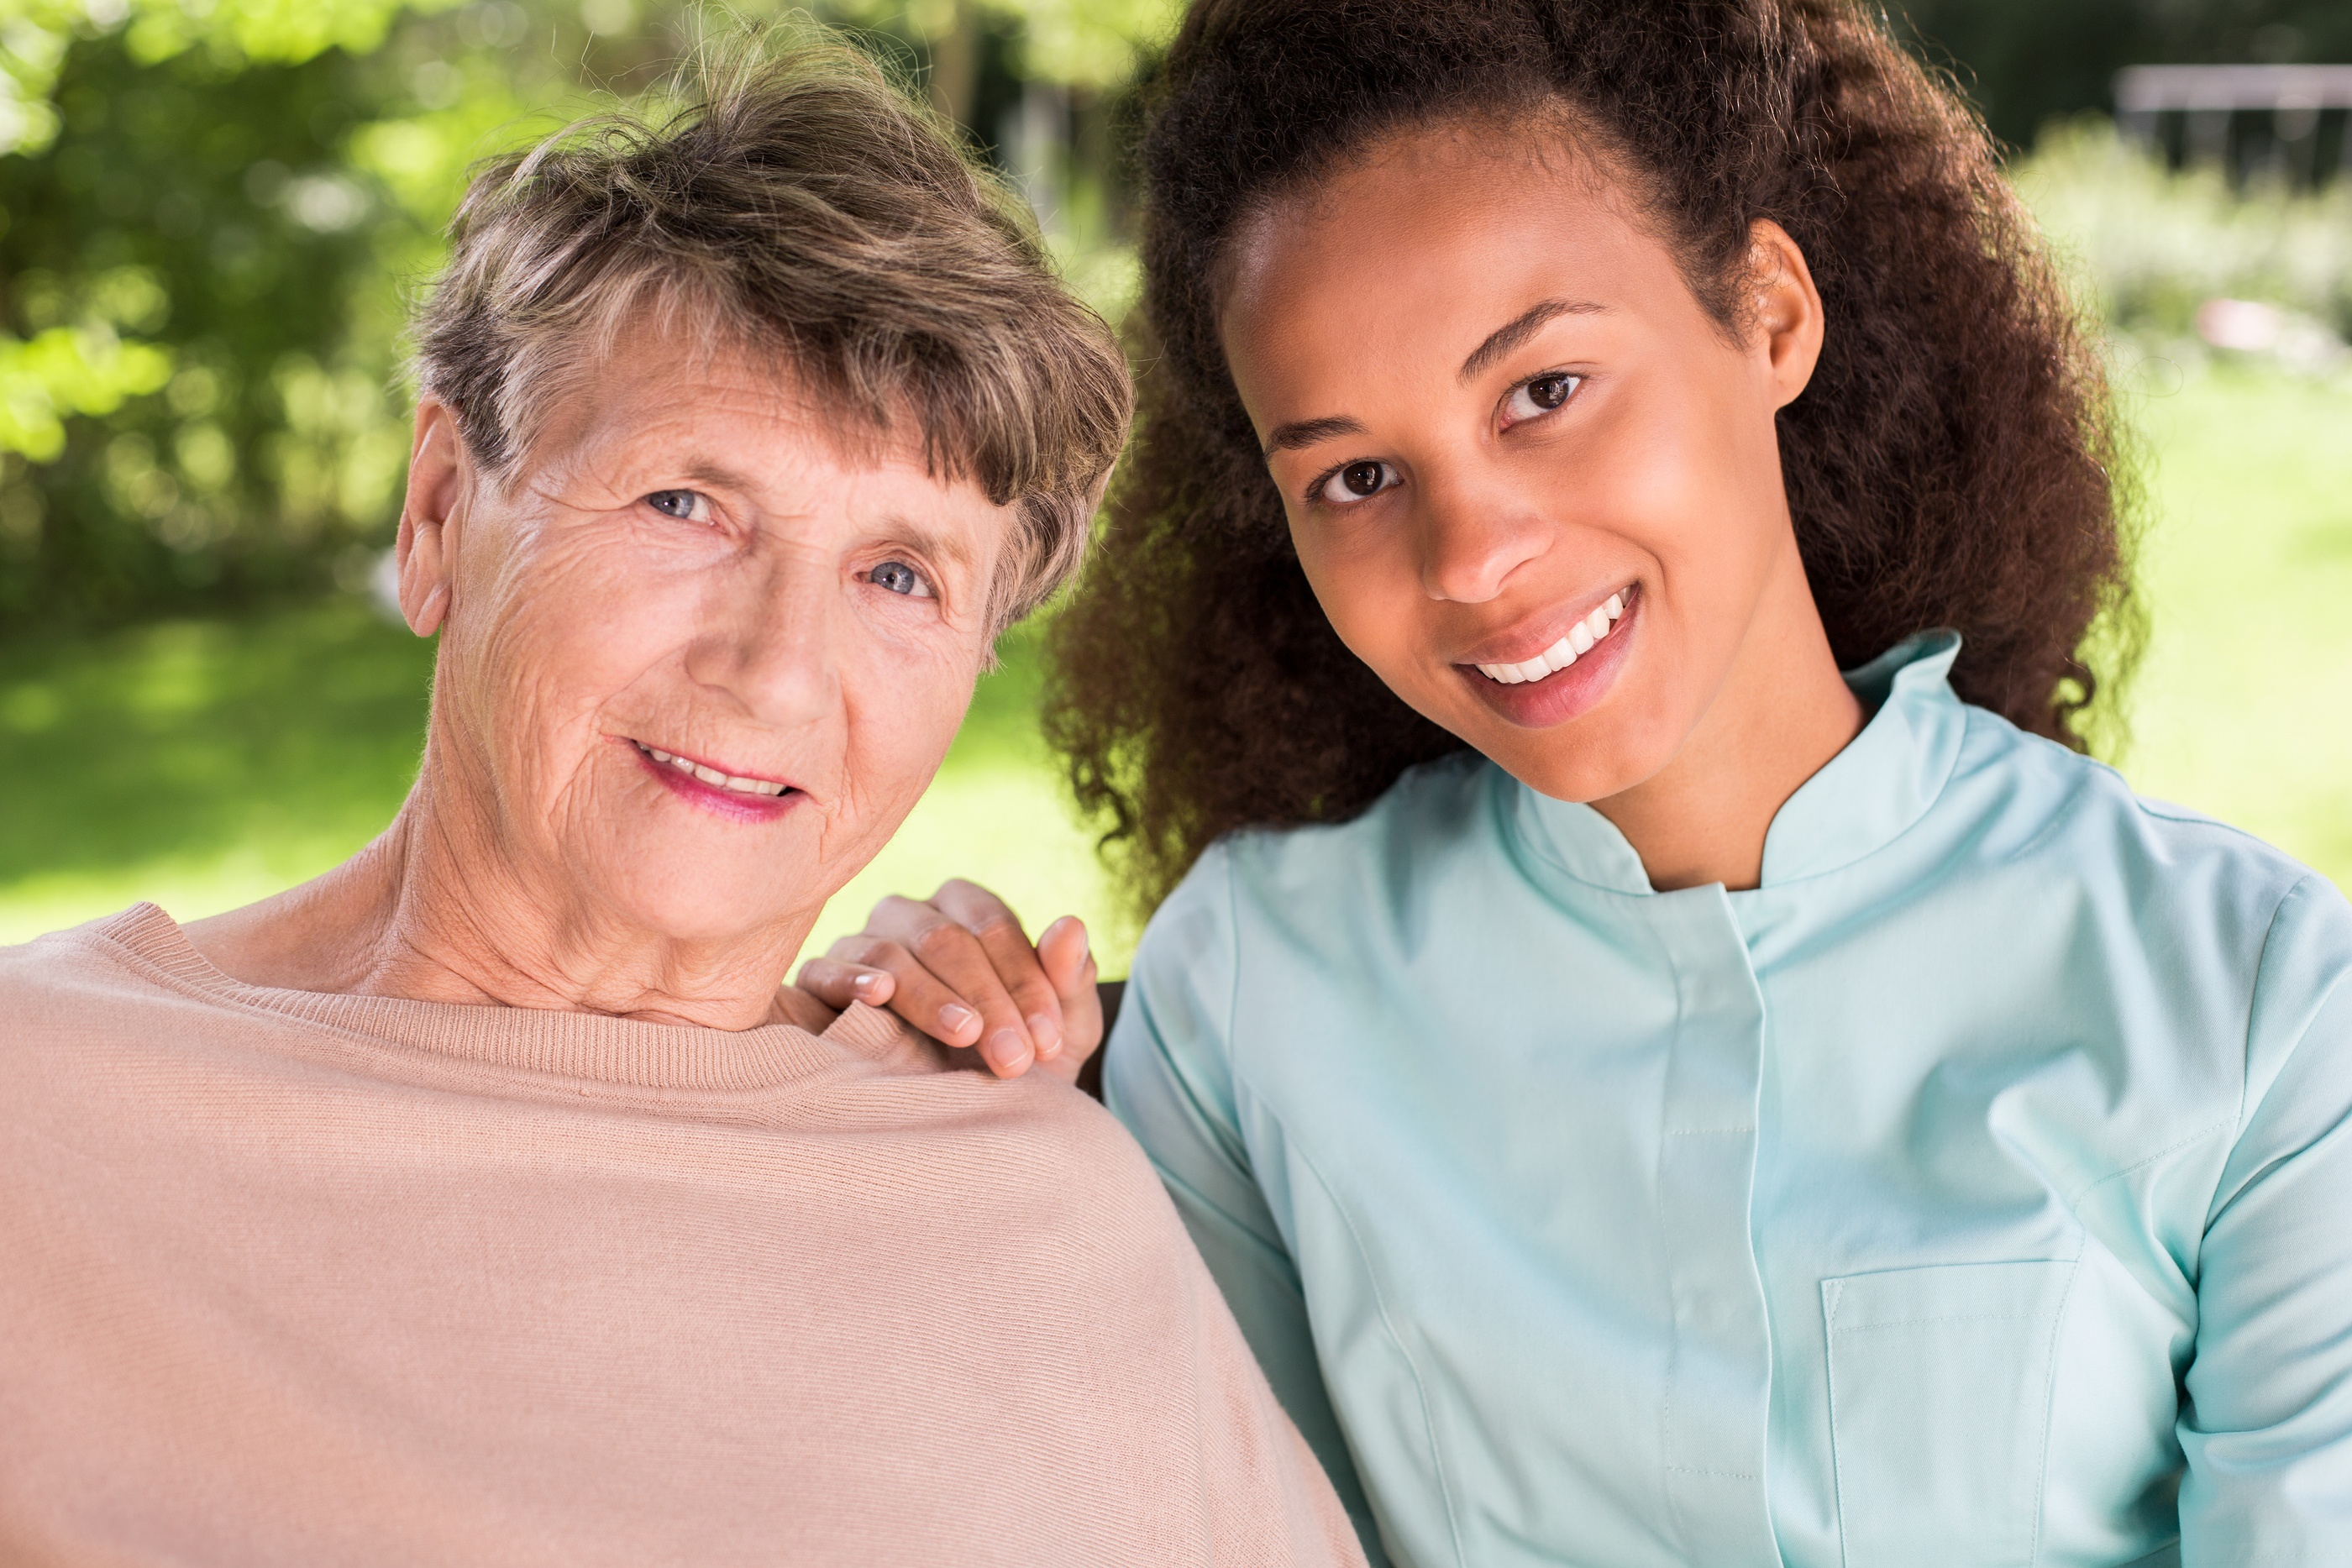 How To Take Care Of Your Caregivers